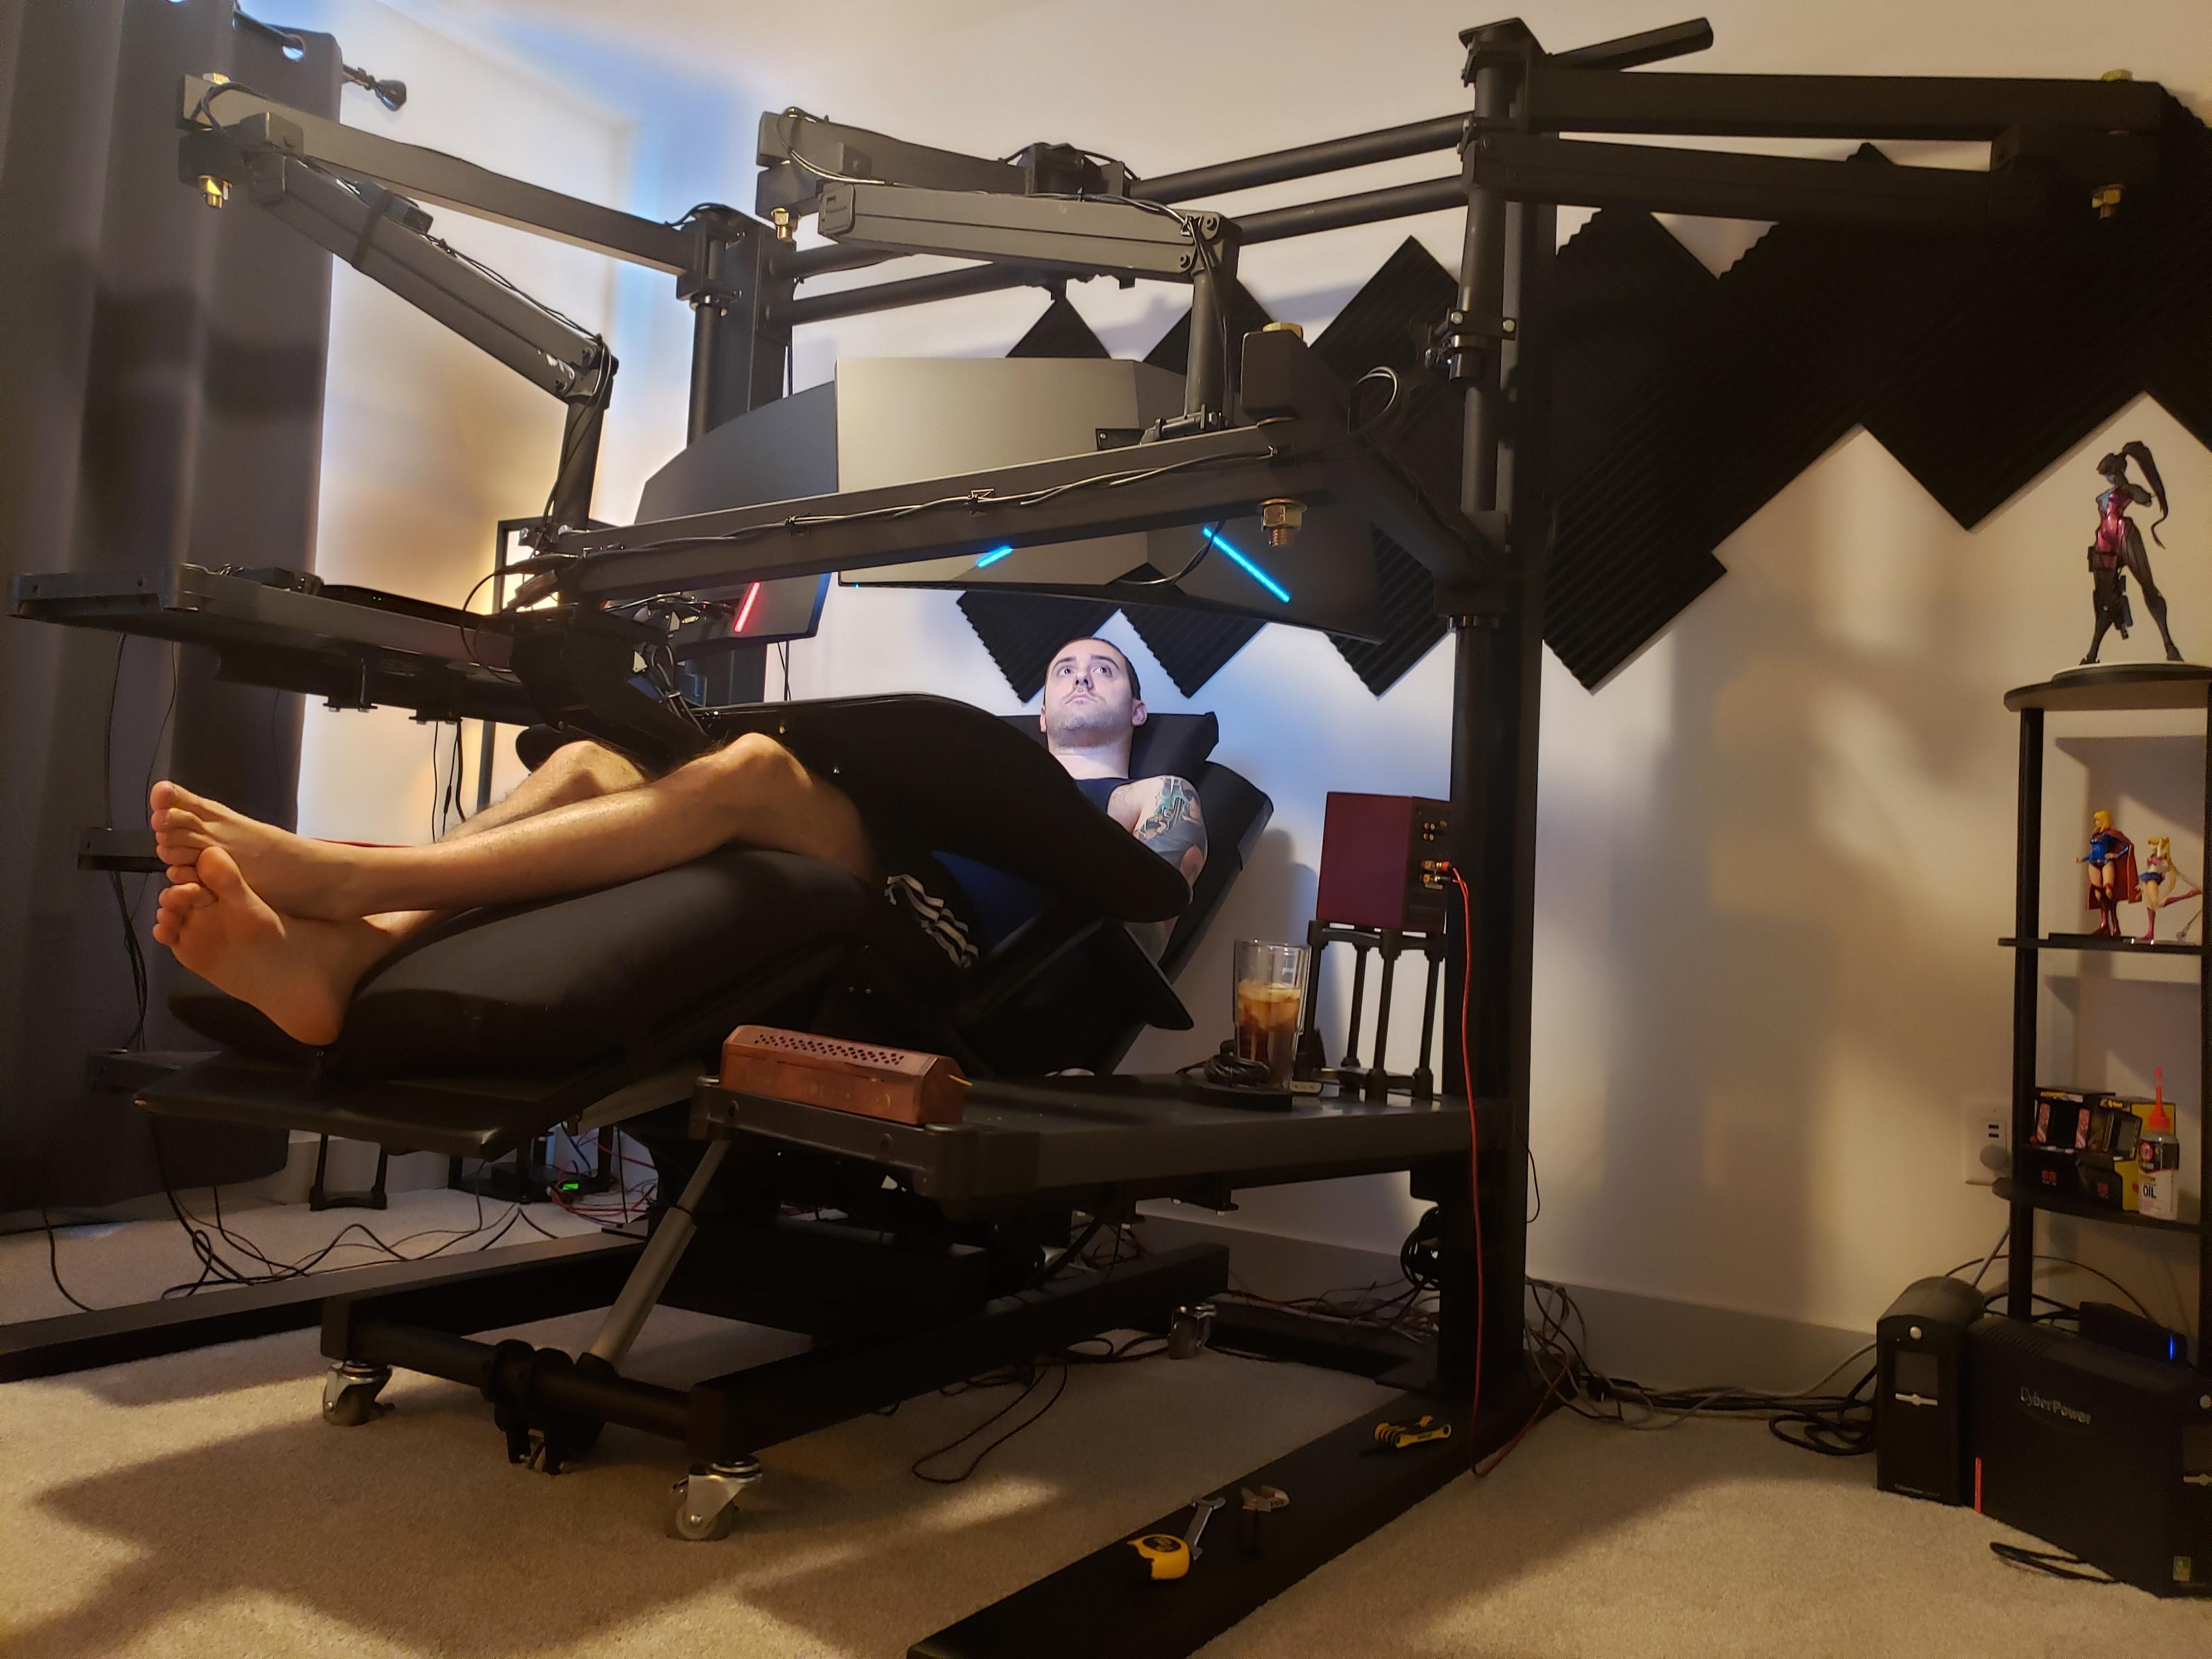 Looks Like He Modified A Squat Rack Stand Into A Computer Desk